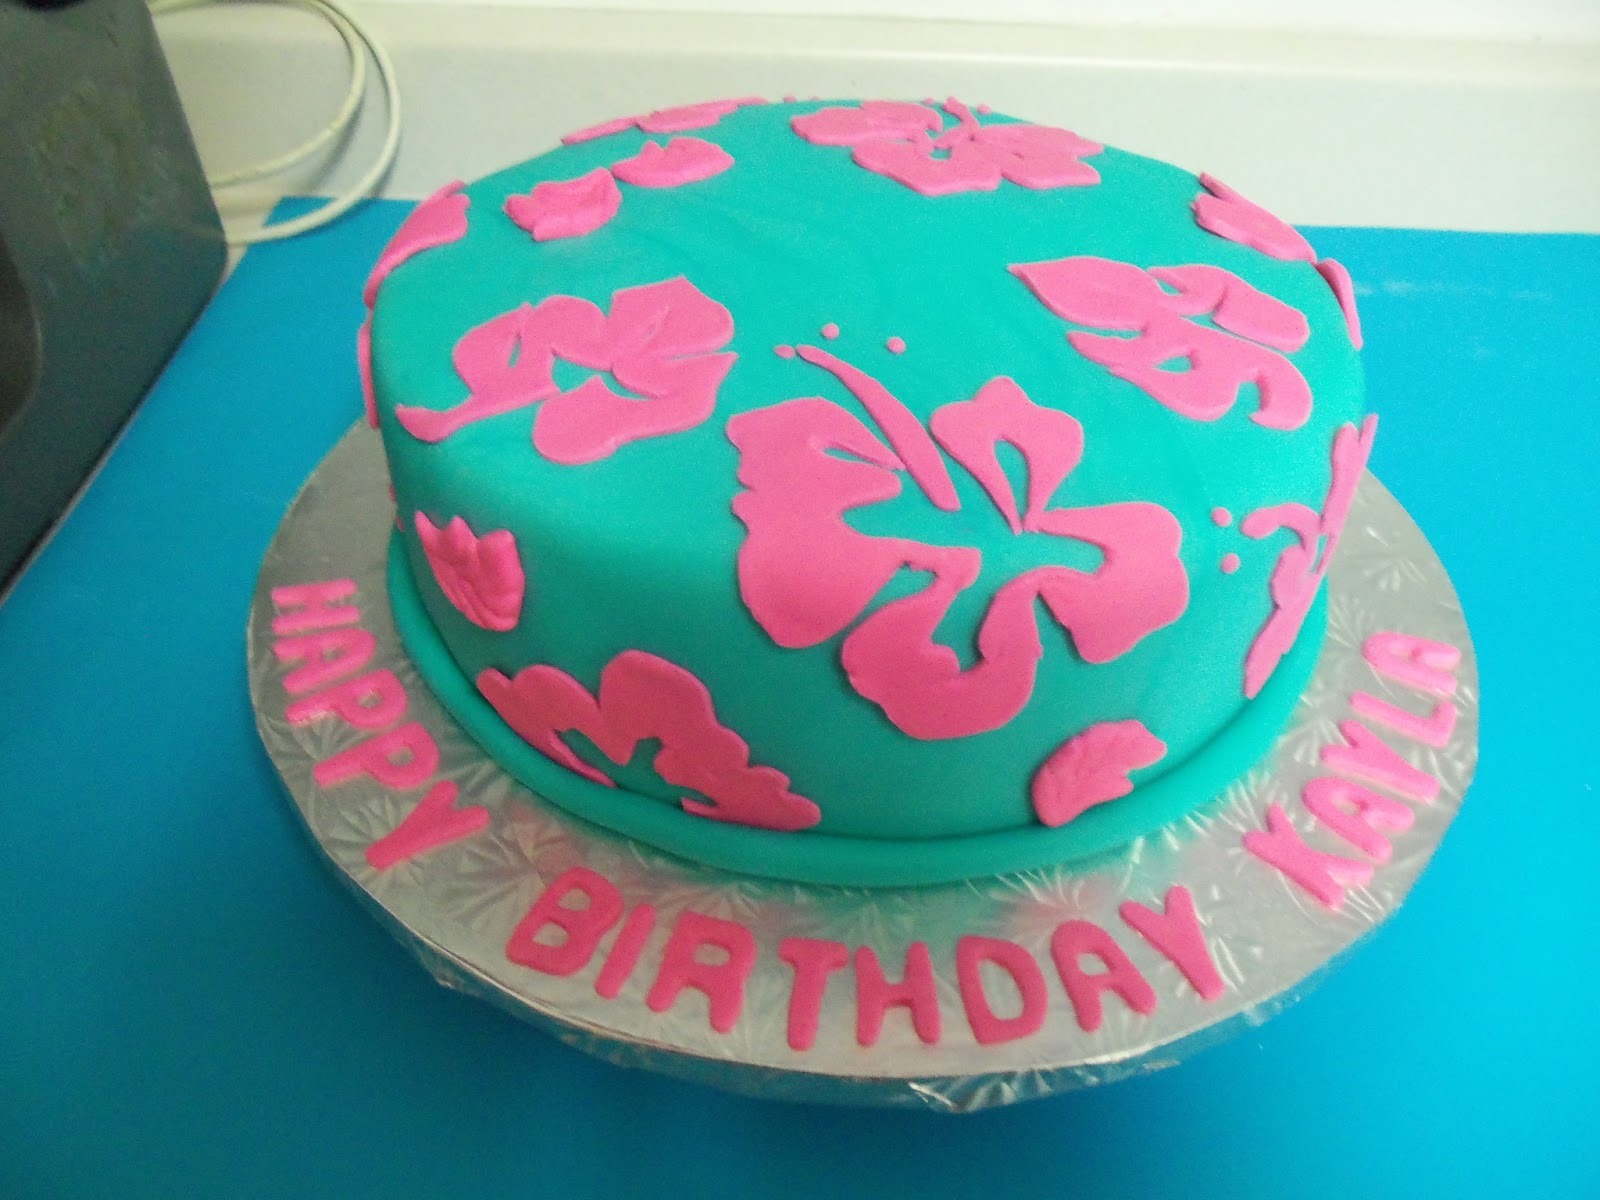 Sugarbakers cake design tropical delight birthday cake marble birthday cake with chocolate icing and fondant i hand cut each flower design from fondant with use of a paper template i then attached them to the izmirmasajfo